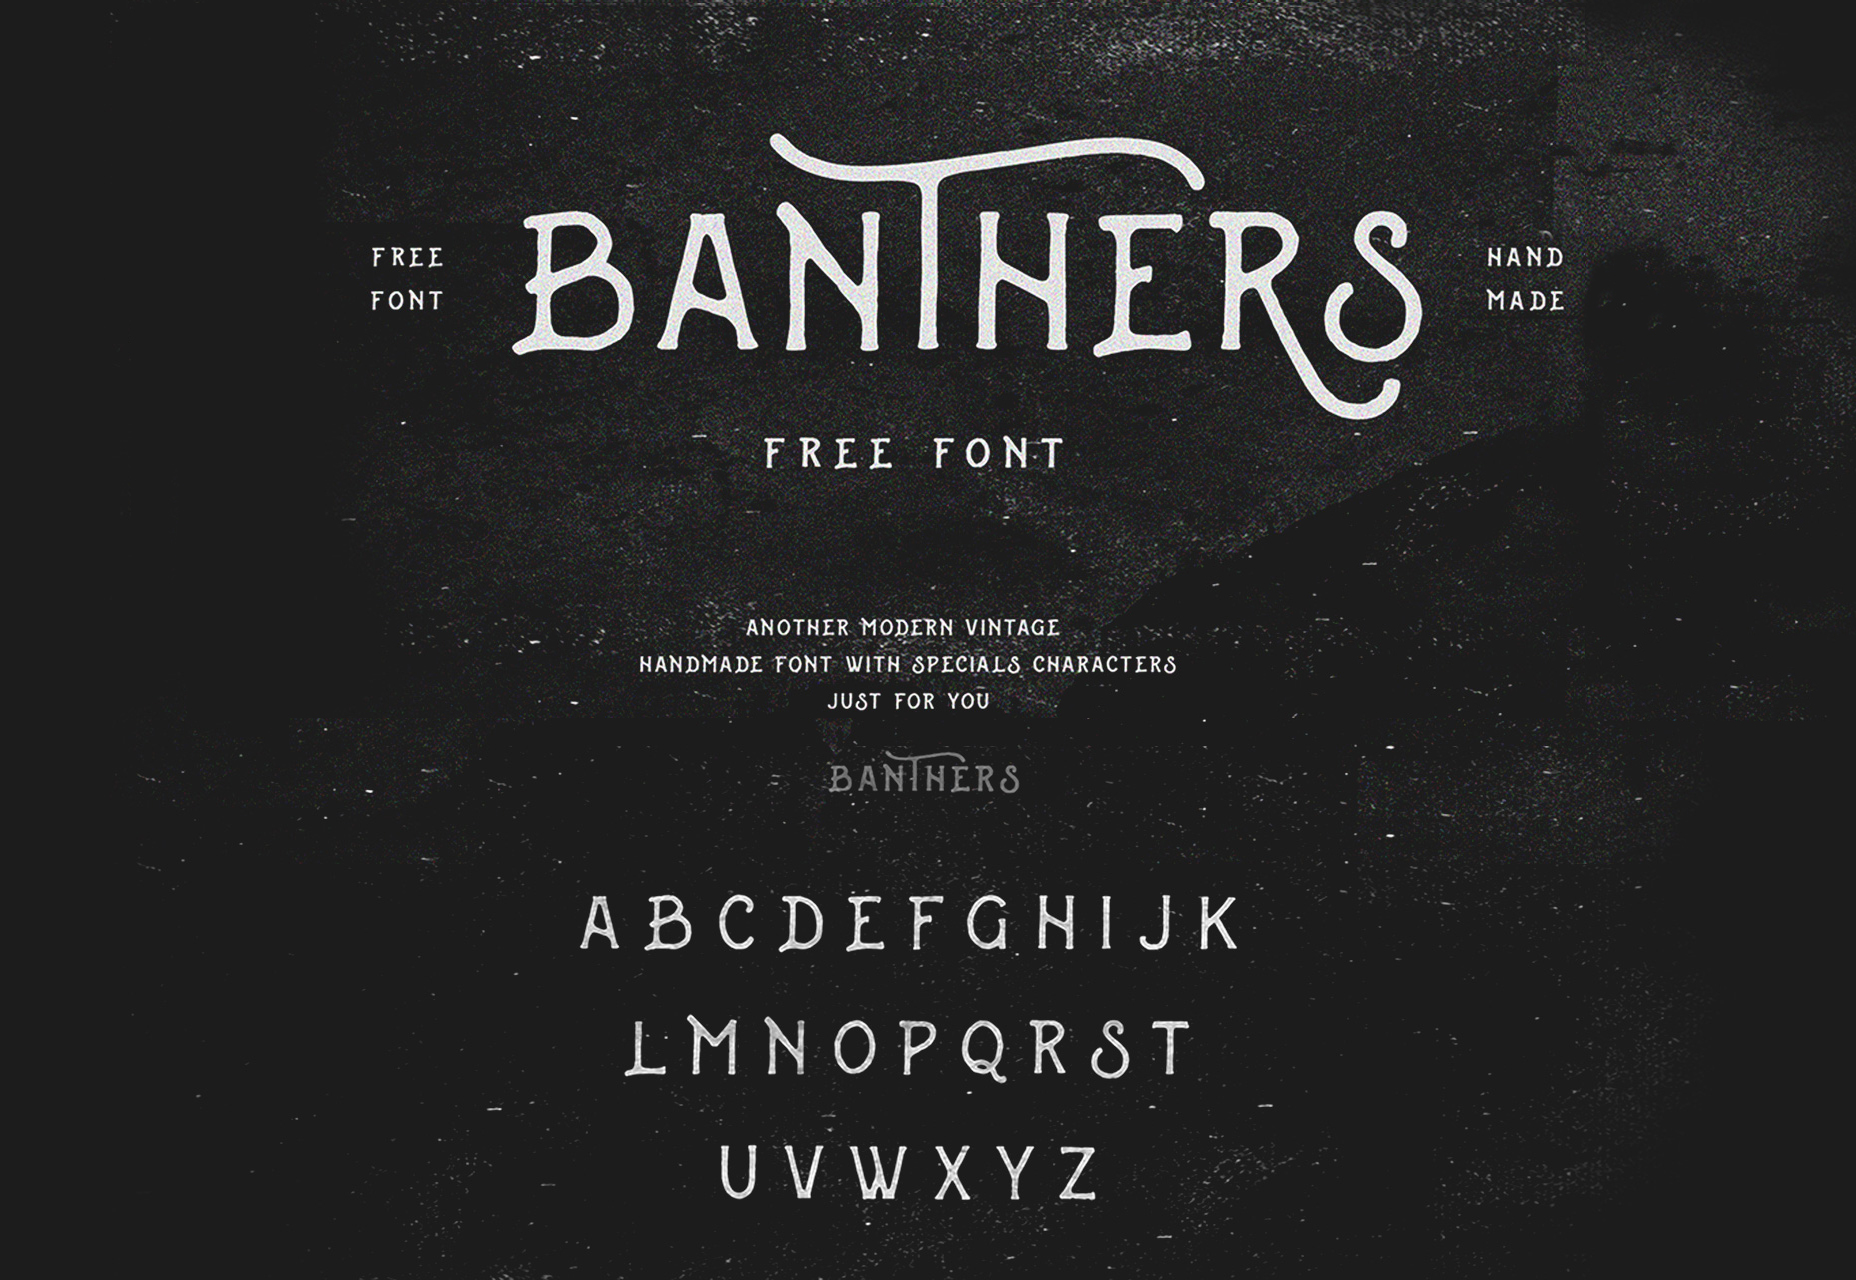 Banthers: A Chalk Handwritten Typeface